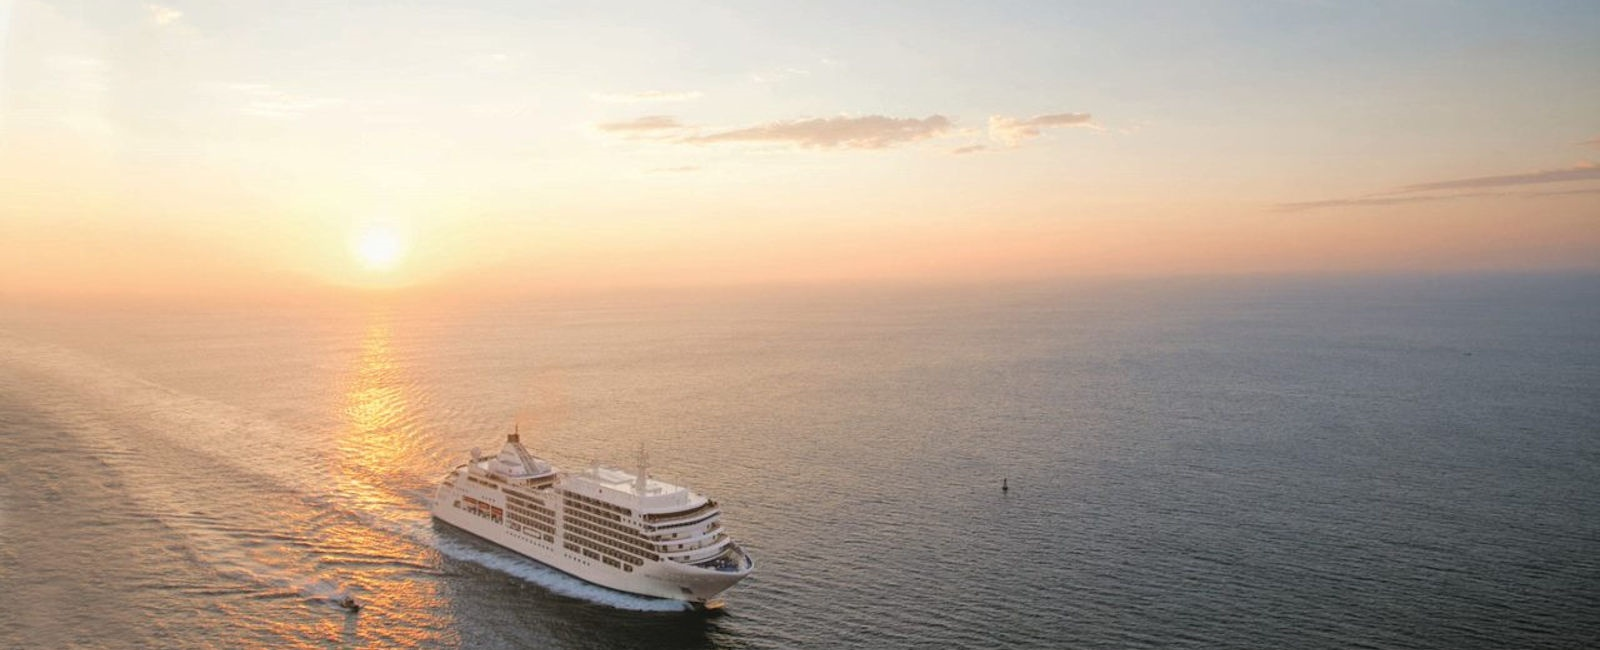 Luxury Silverseas cruise Holidays